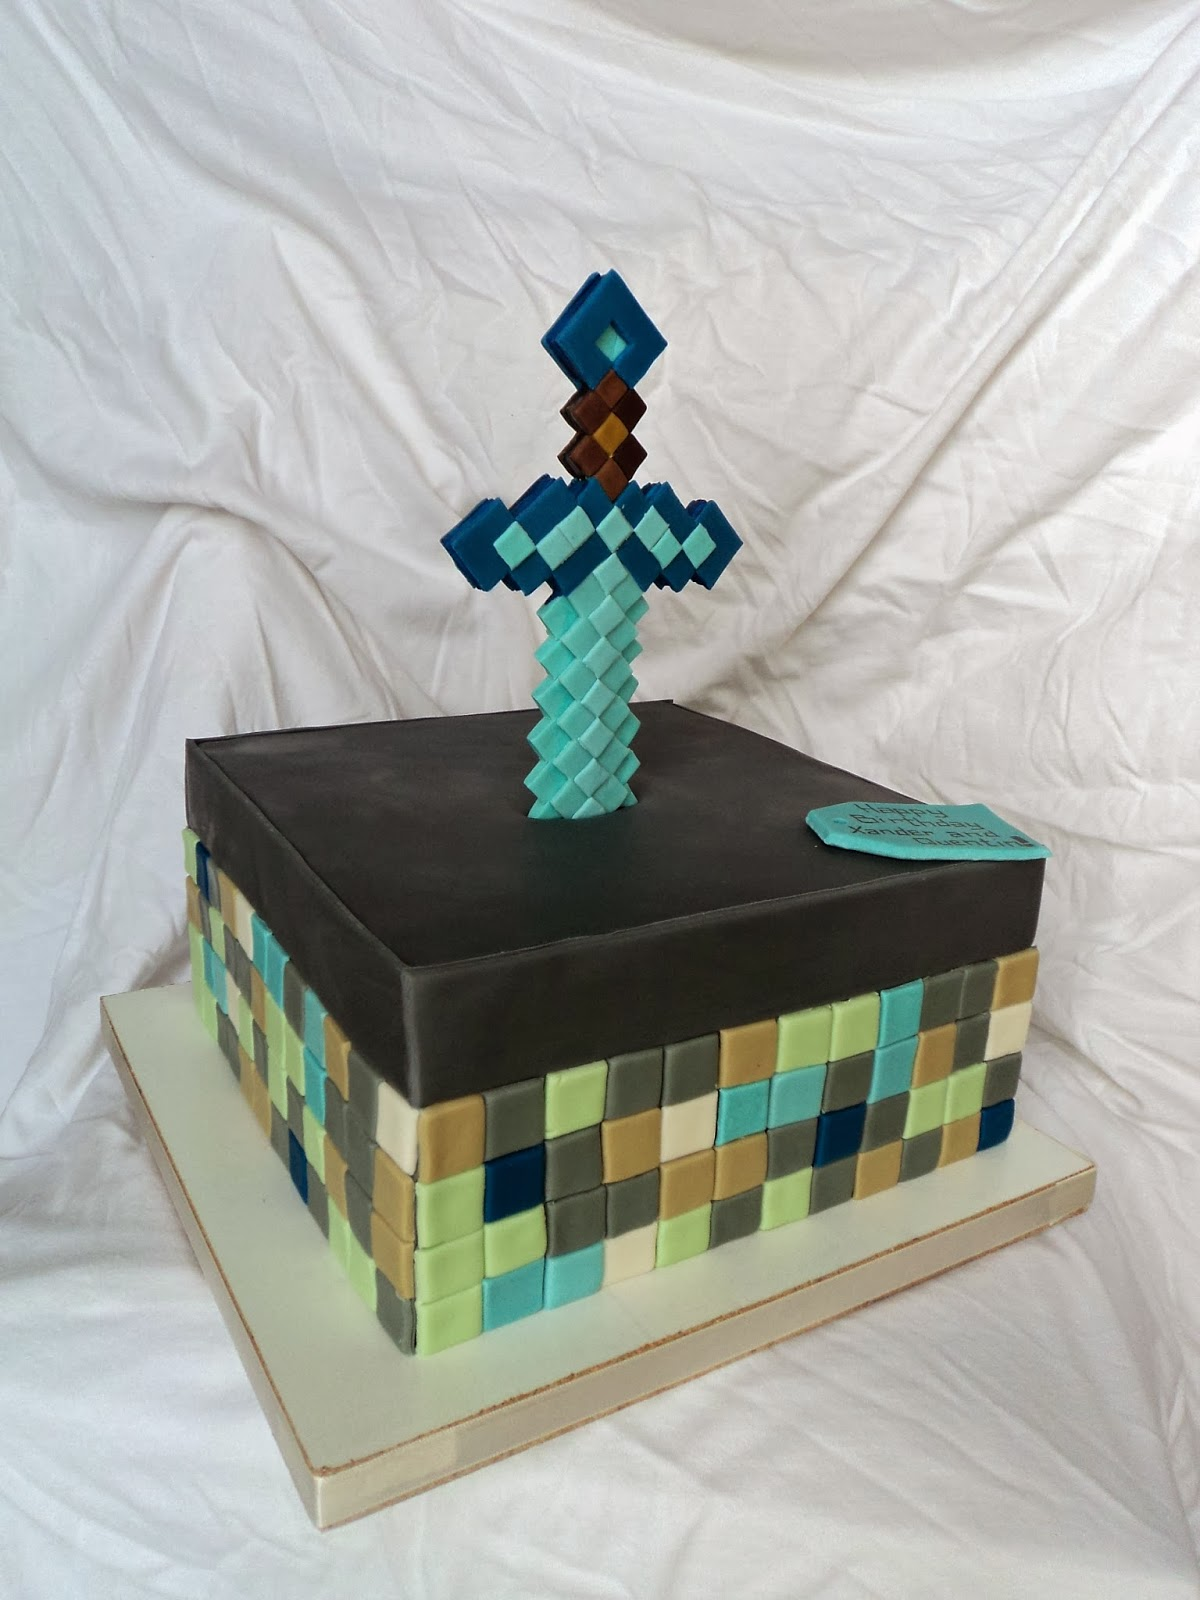 Minecraft Sword Cake Images : Delectable Cakes: Minecraft Sword Cake